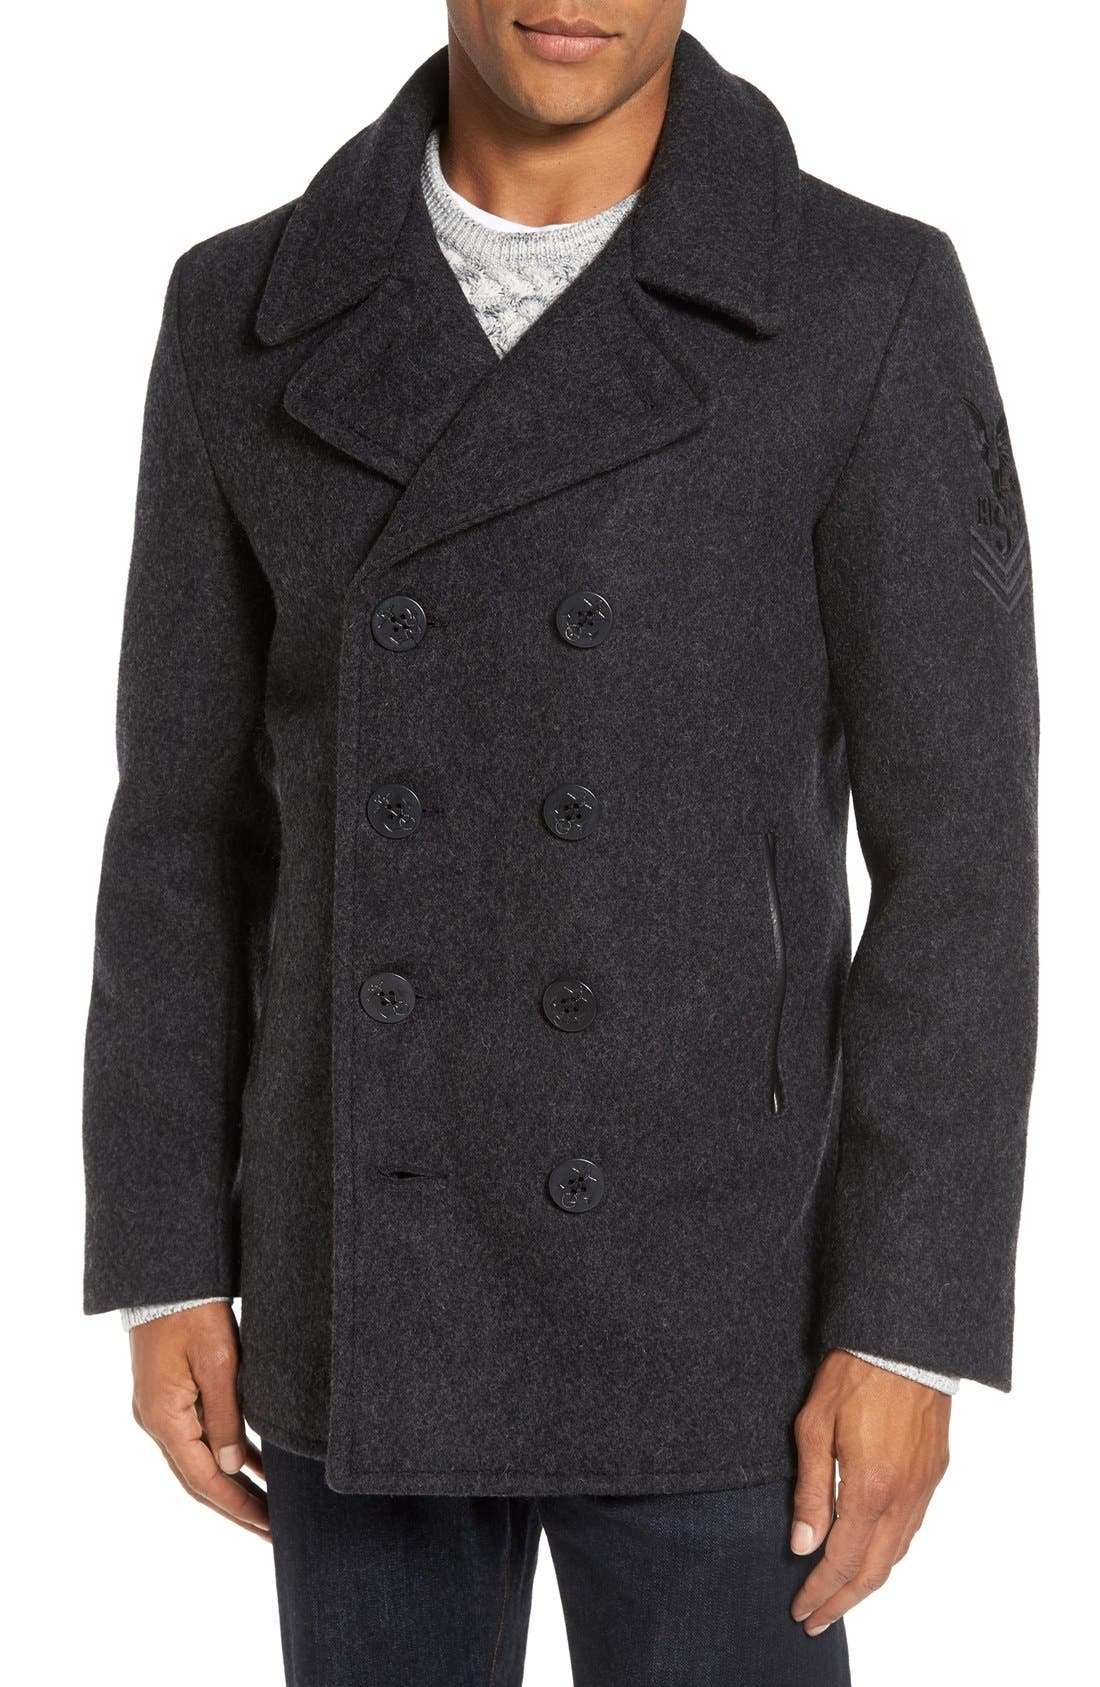 Main Image - Schott NYC Embroidered Wool Blend Peacoat